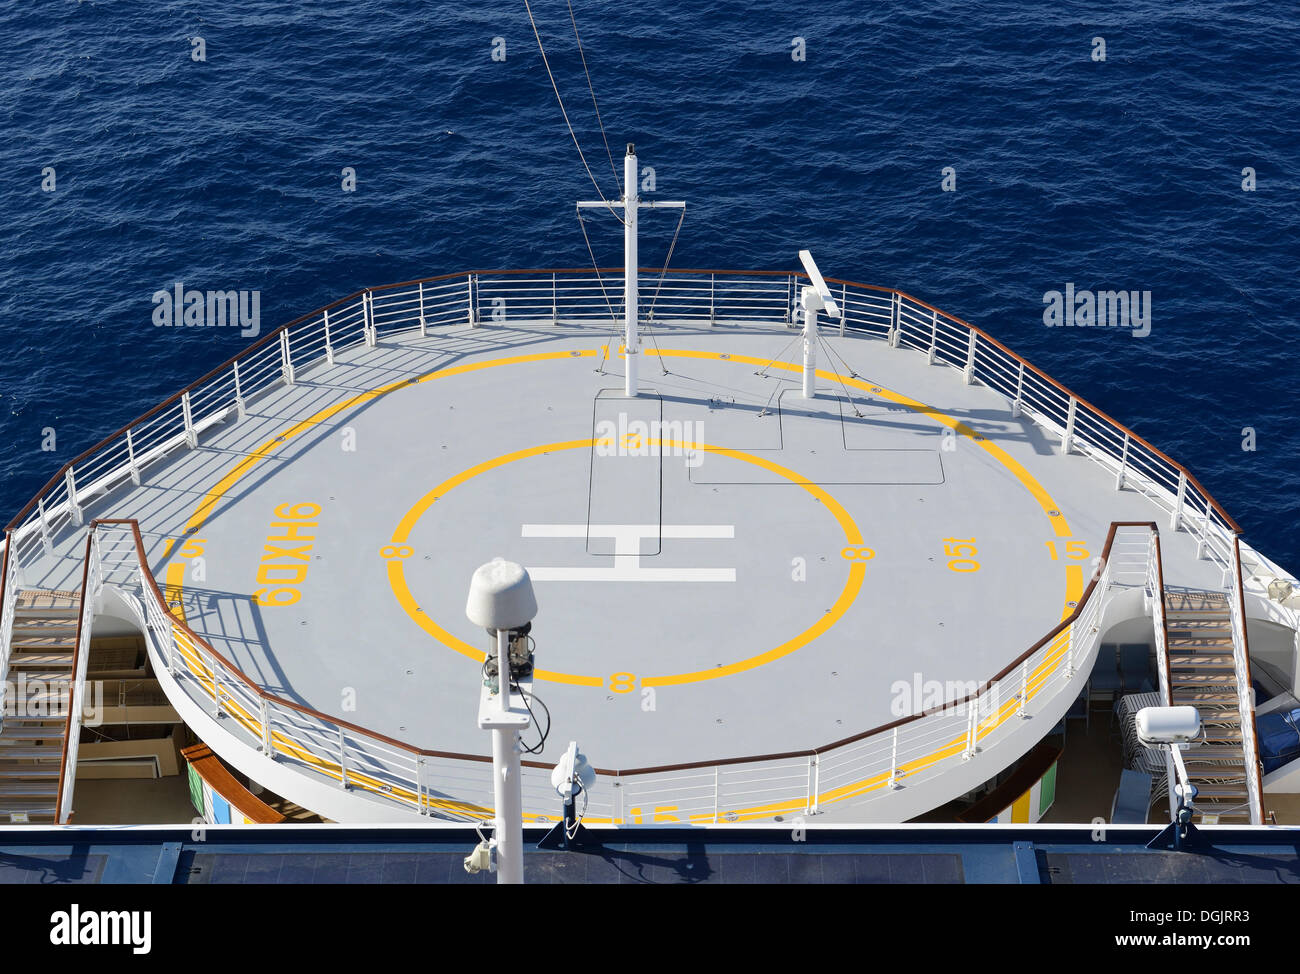 circle helicopter landing pad with Stock Photo Helipad On A Cruise Ship 61879415 on pointlighting further Air ambulance furthermore Helicopter Landing On Top Of Building Image 5767938 in addition Helicopter Landing Pad On Grass Image 6208901 in addition Very Busy Yet Some More.